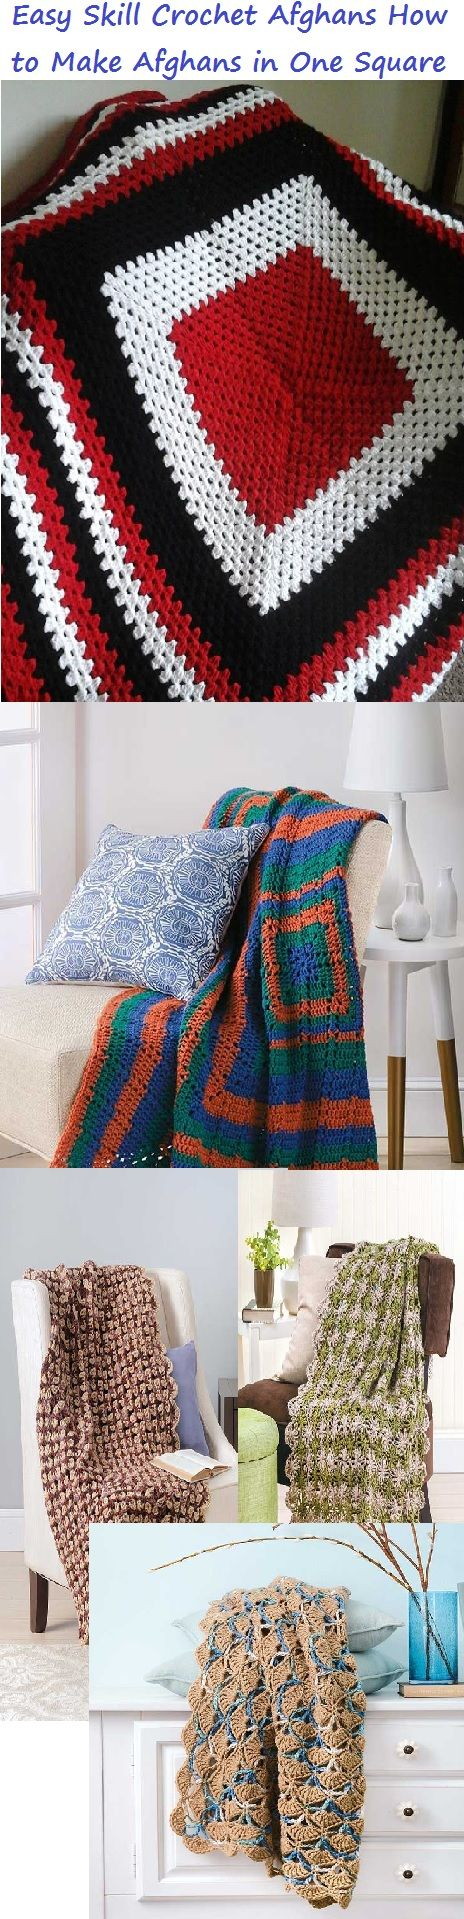 Best 25 crochet afghans ideas on pinterest crochet blanket easy to crochet one square afghan patterns granny squares bankloansurffo Gallery